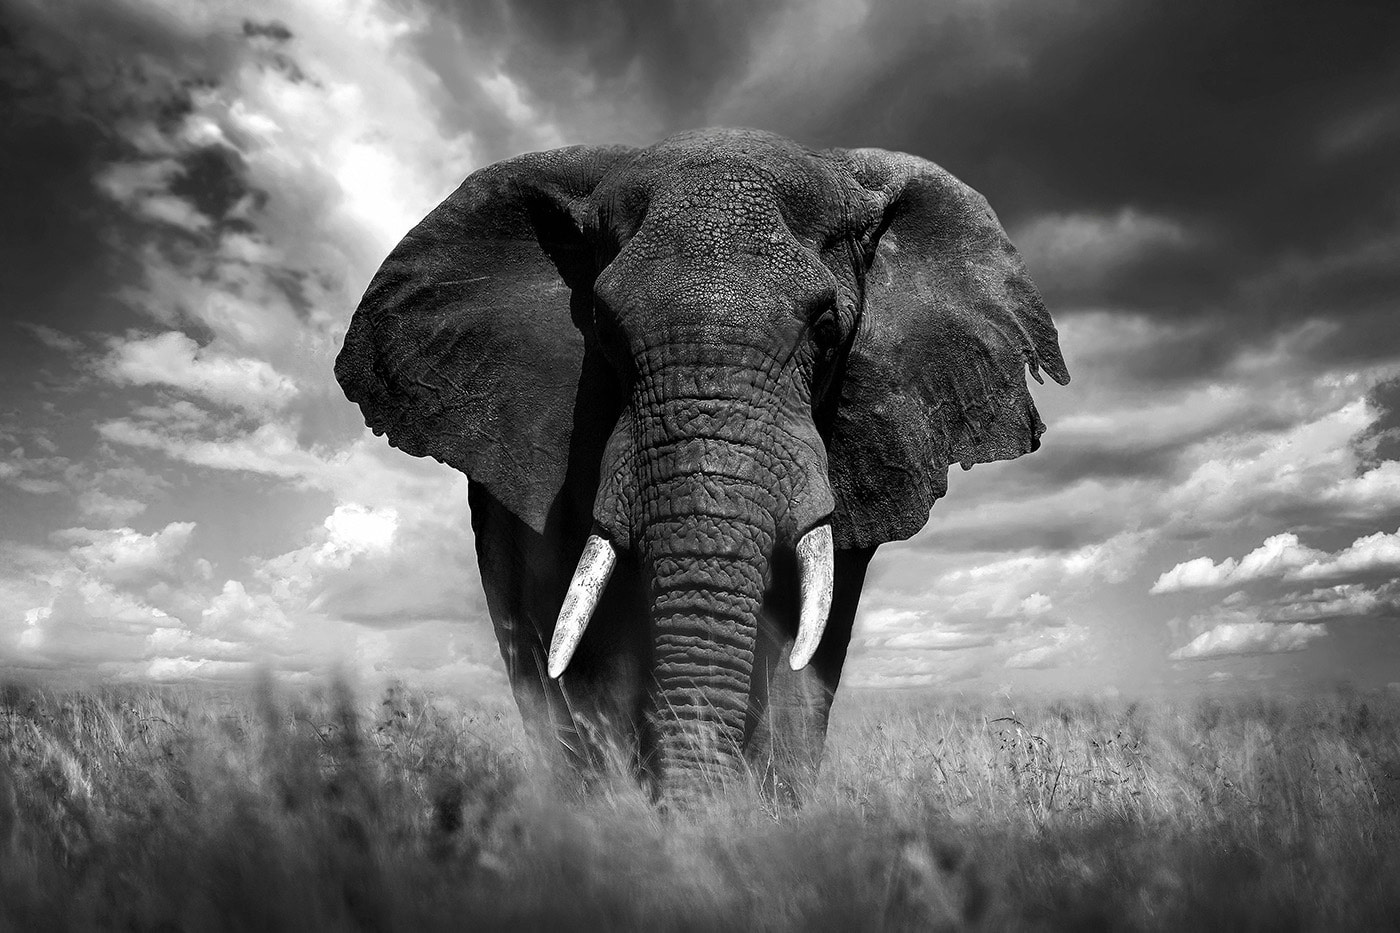 An African elephant in Kenya. Photo: Bjorn Persson